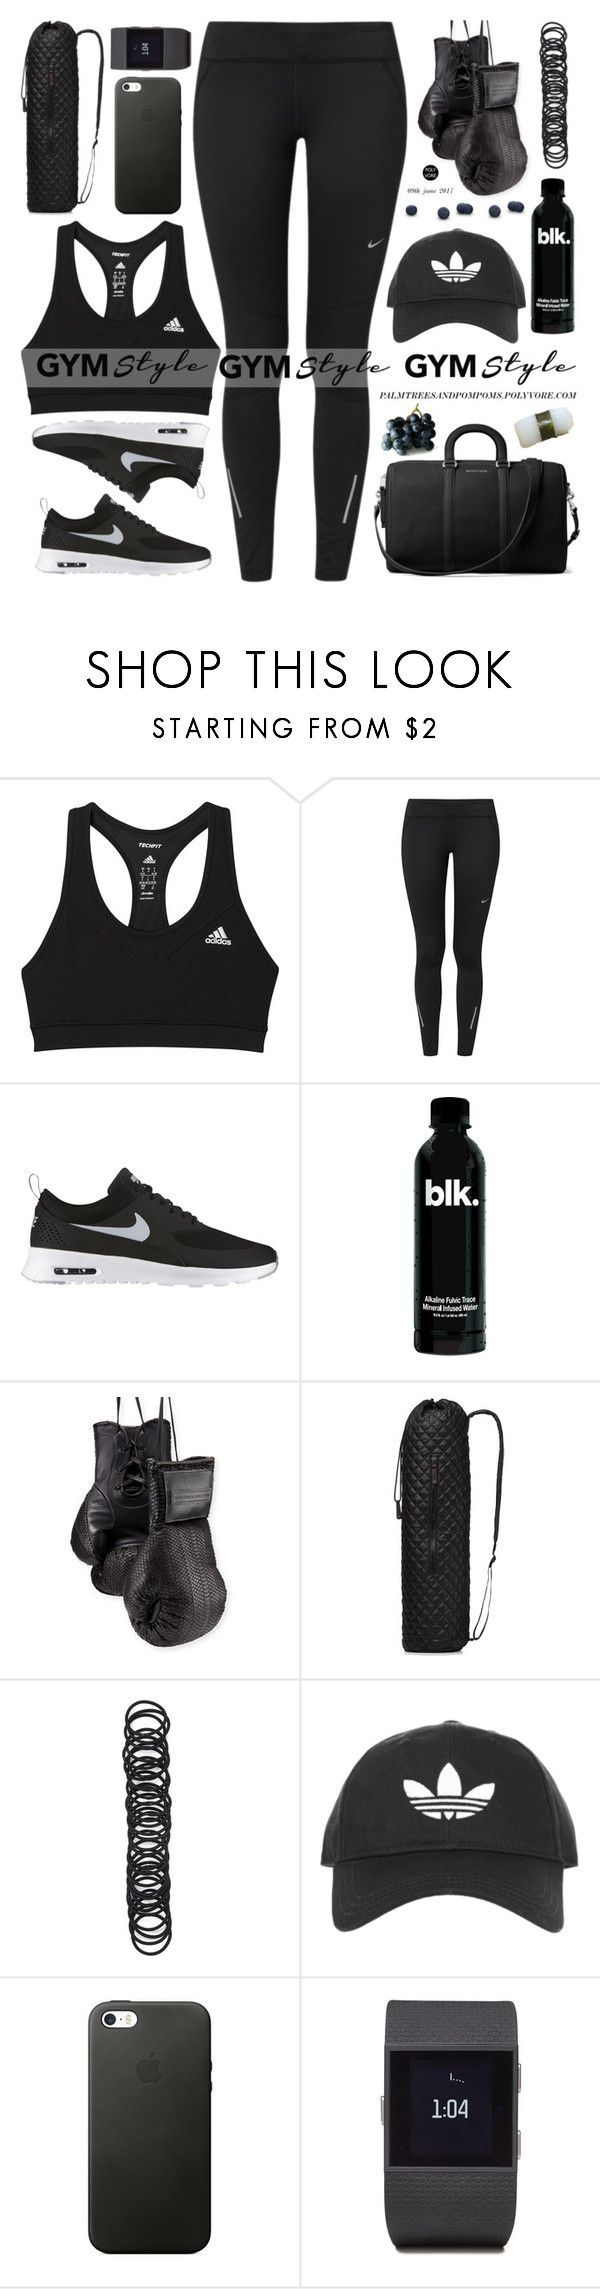 """Gym Essentials"" by palmtreesandpompoms ❤ liked on Polyvore featuring adidas, NIKE, Elisabeth Weinstock, M Z Wallace, Forever 21, Topshop, Fitbit, MICHAEL Michael Kors and Jura"